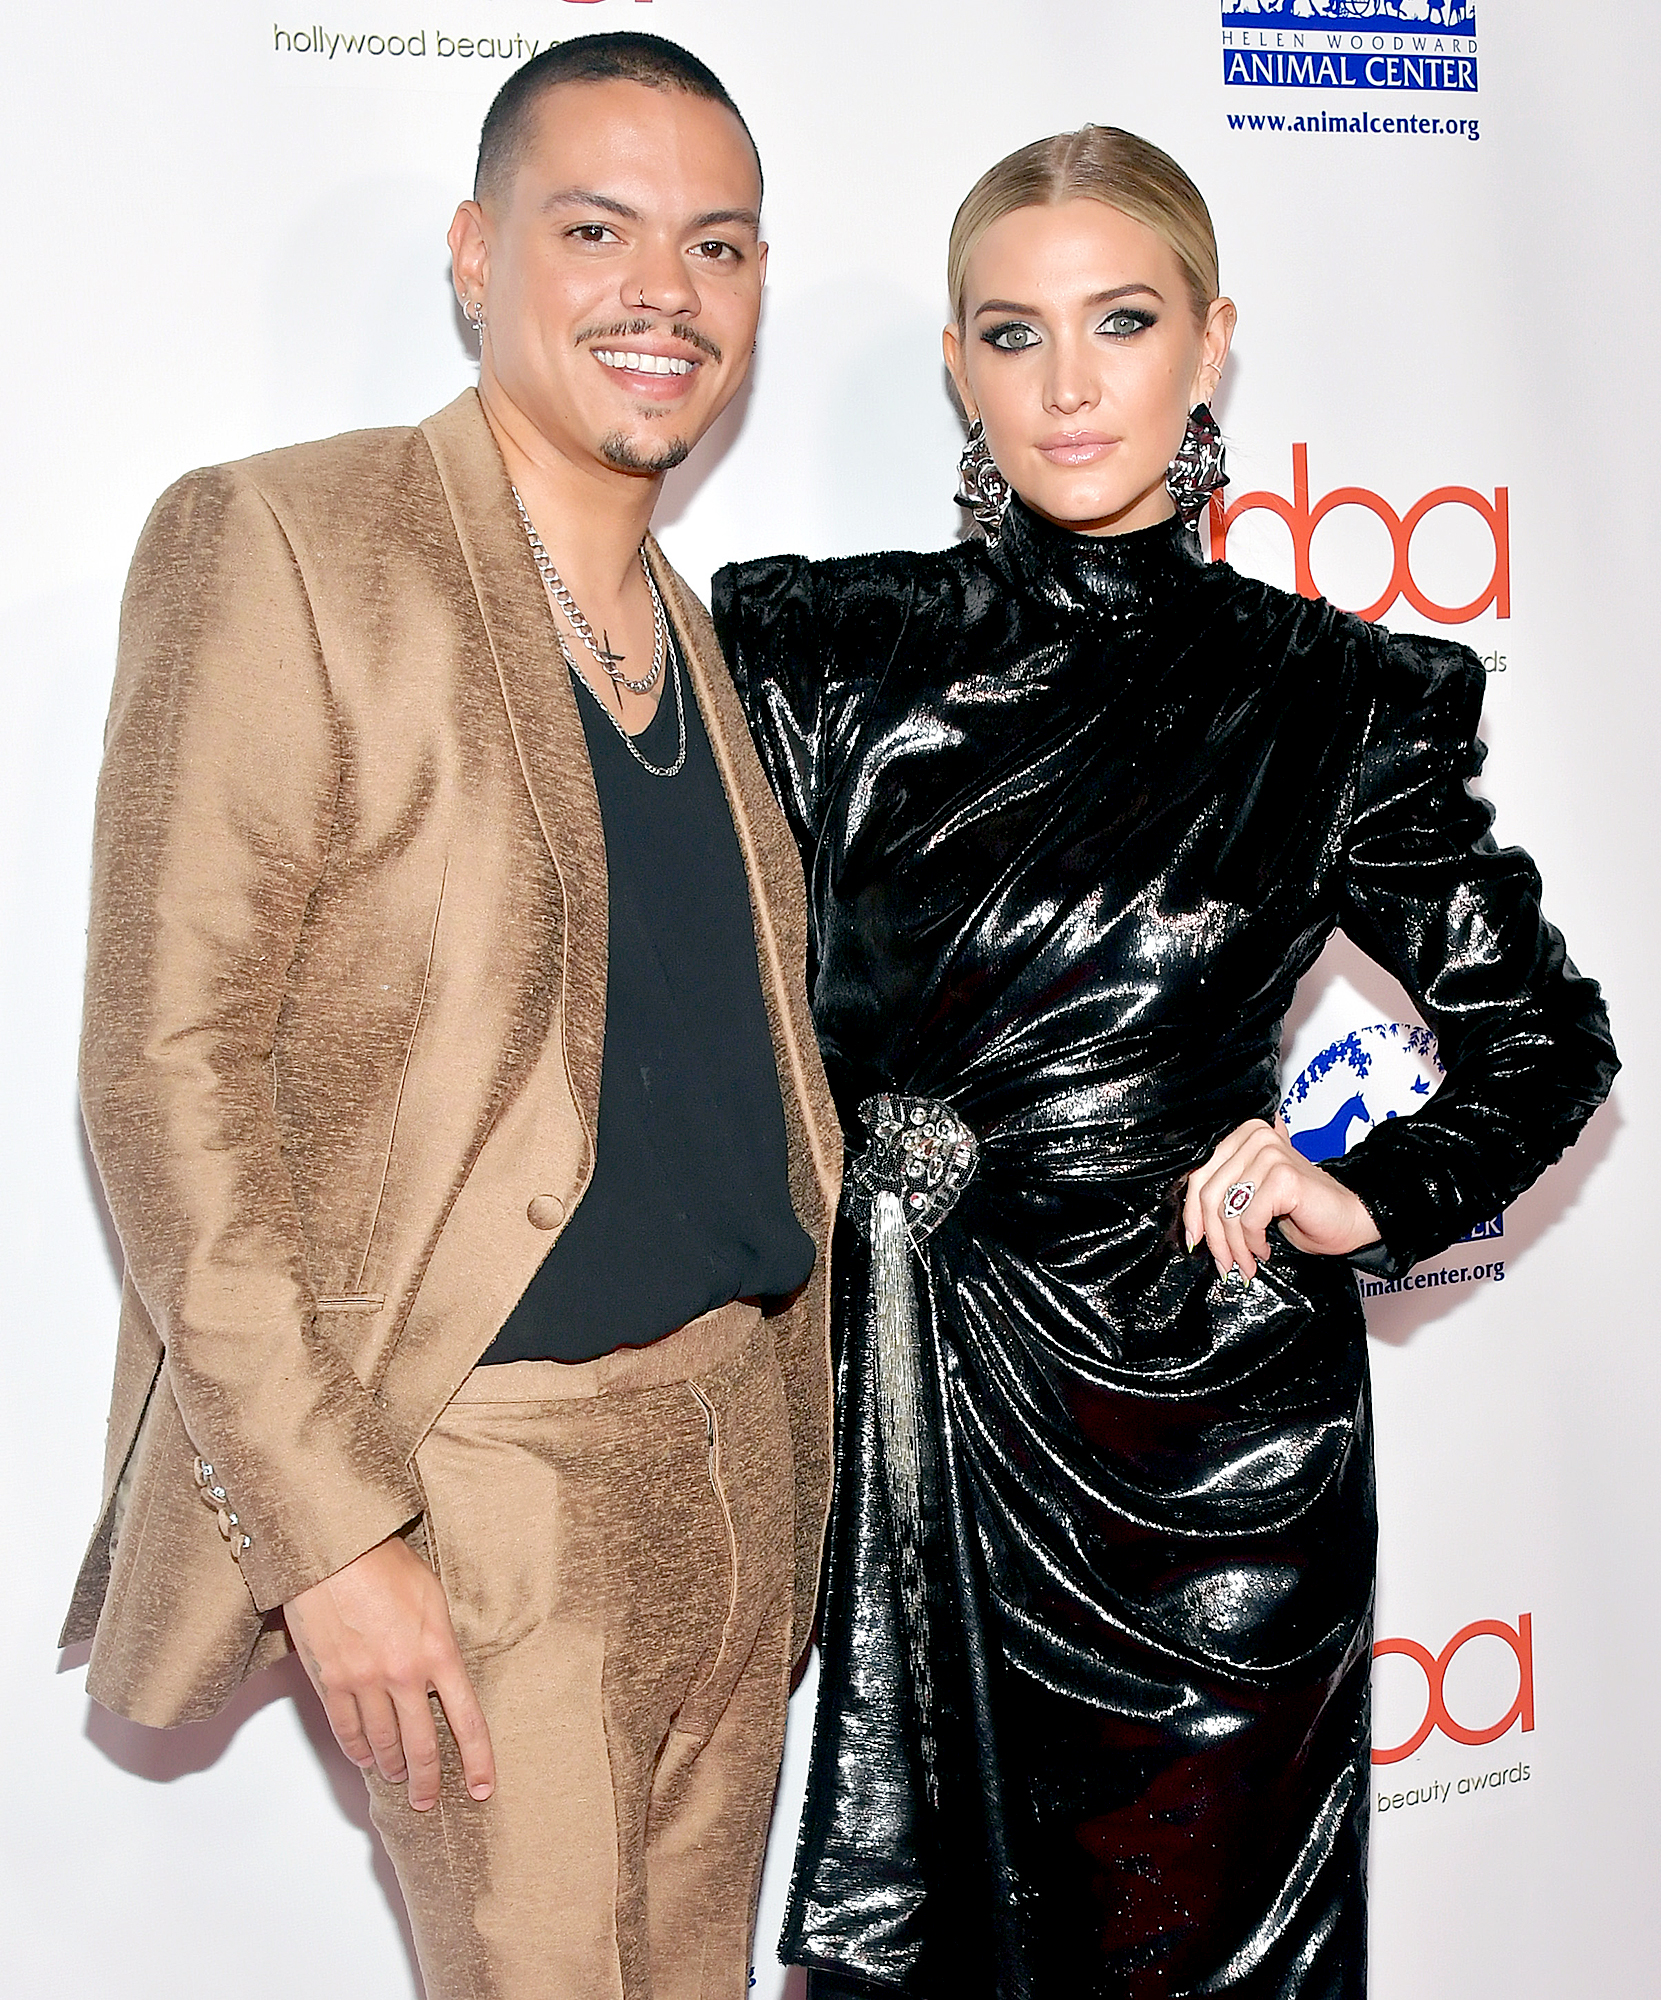 Ashlee-Simpson-and-Evan-Ross - Evan Ross and Ashlee Simpson attend the 2019 Hollywood Beauty Awards at Avalon Hollywood on February 17, 2019 in Los Angeles, California.